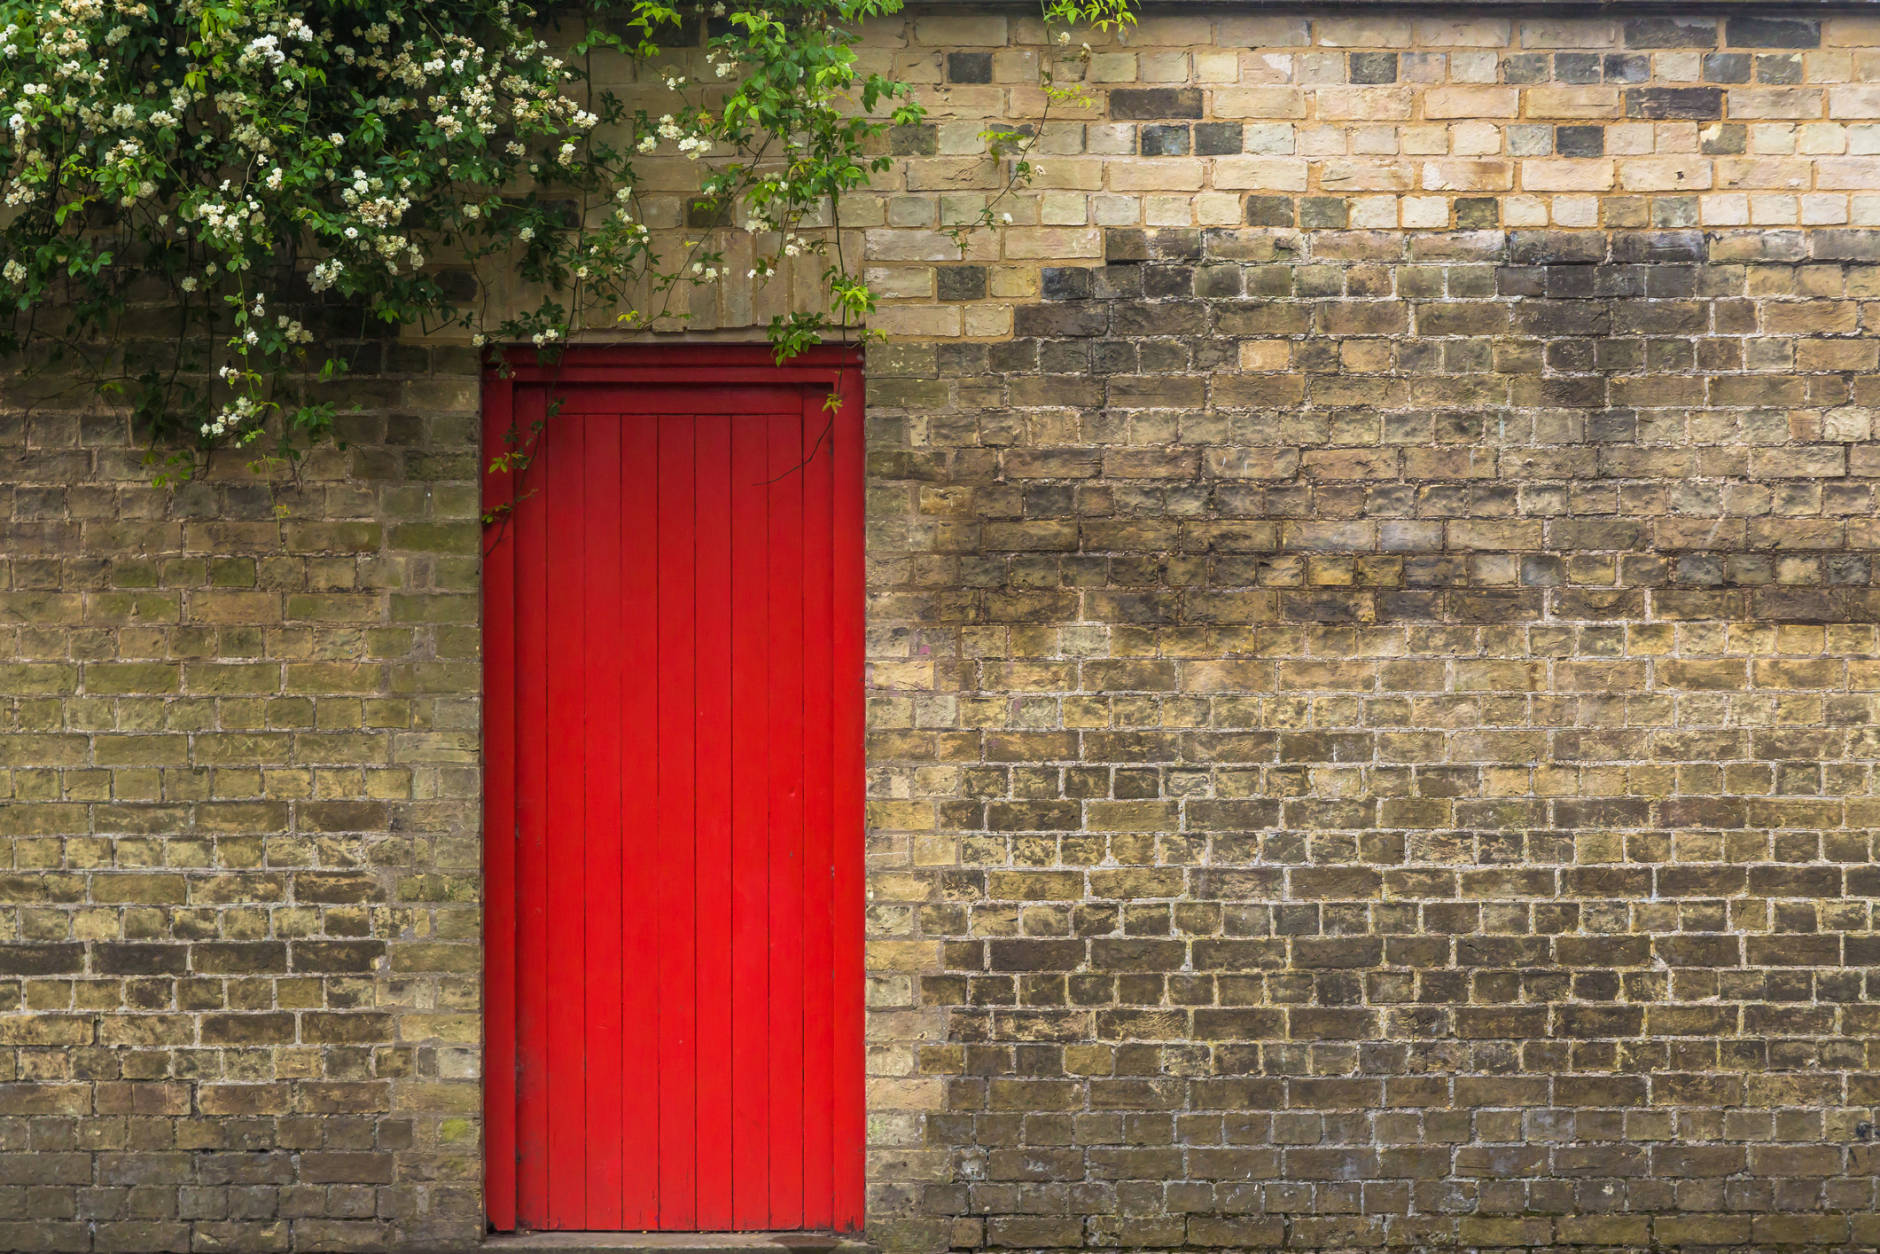 Red door on brick wall with vegetation